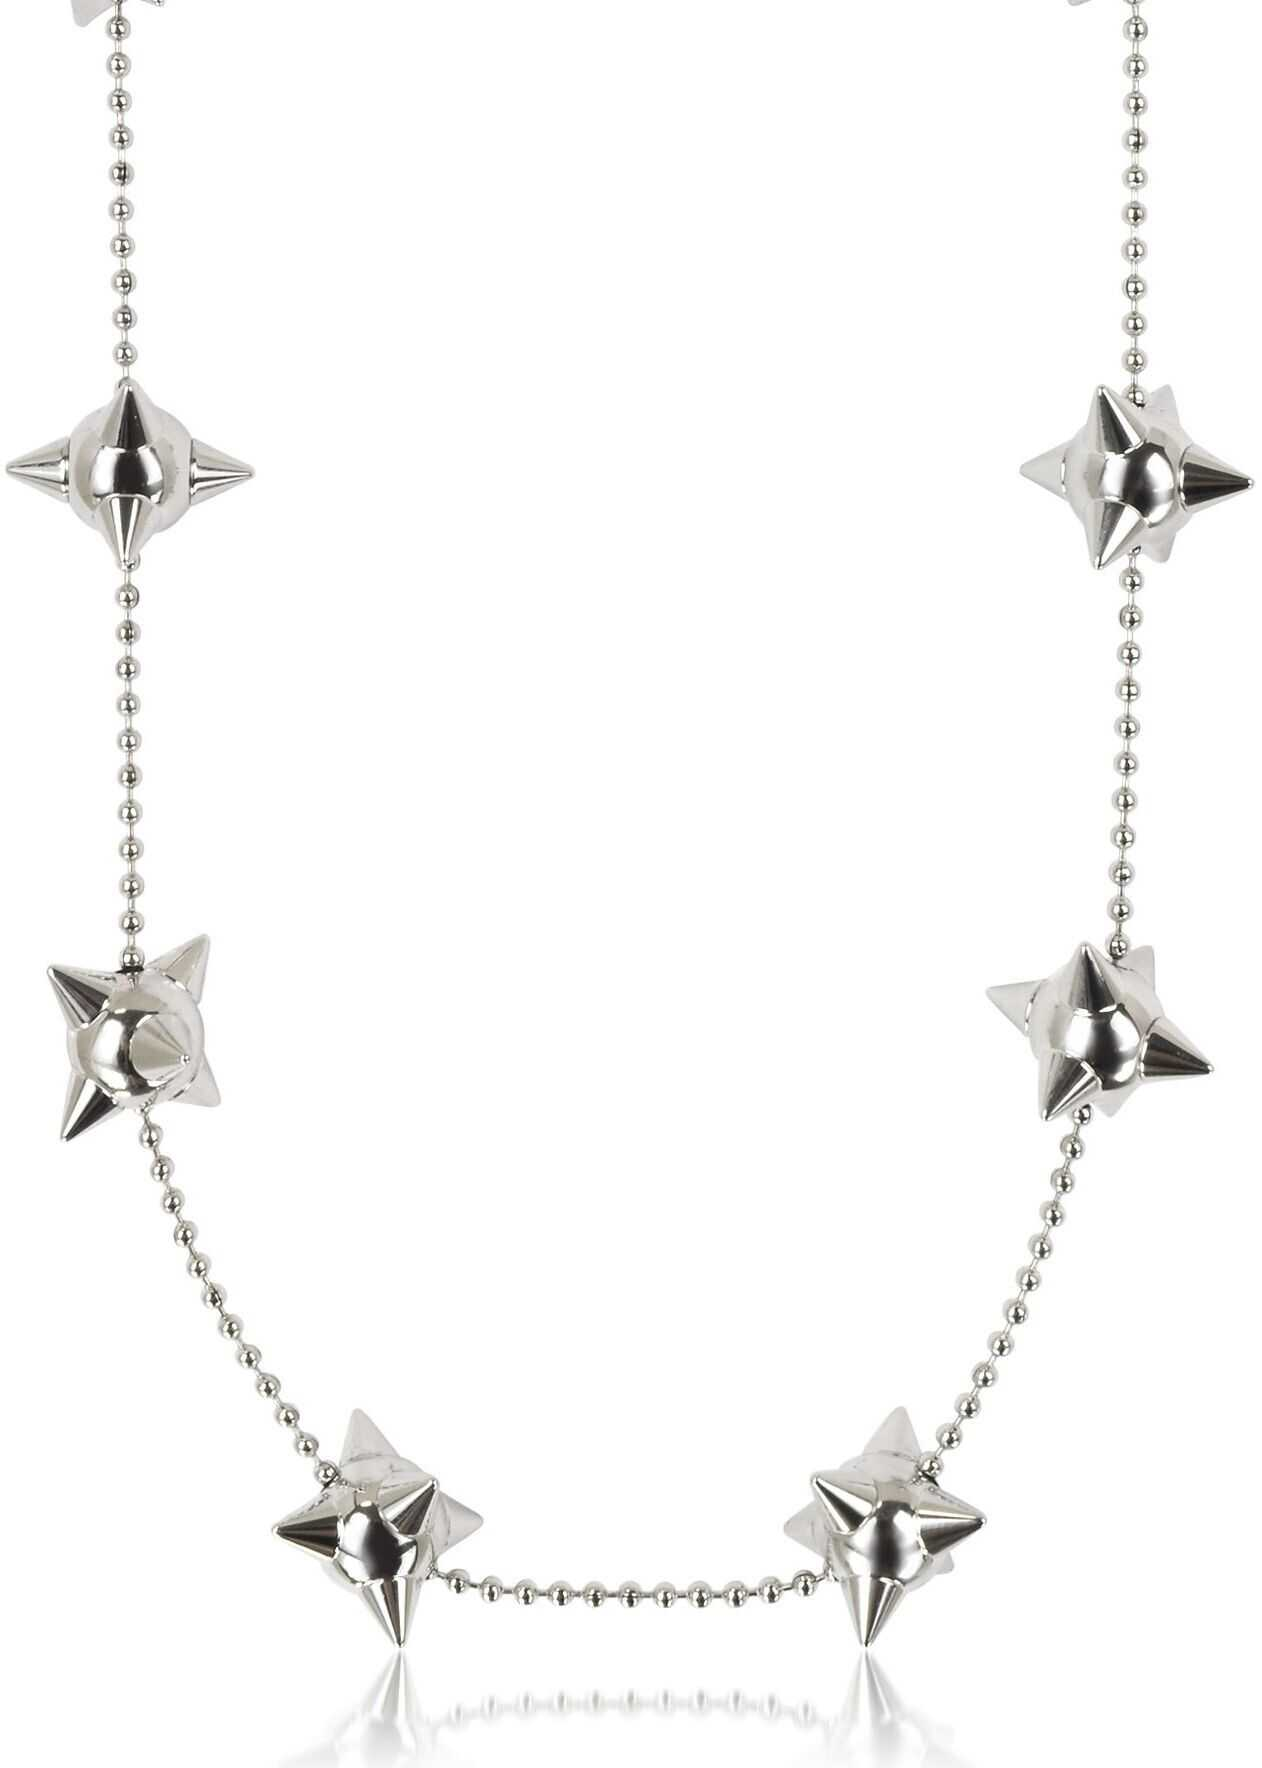 DSQUARED2 Metal Necklace SILVER